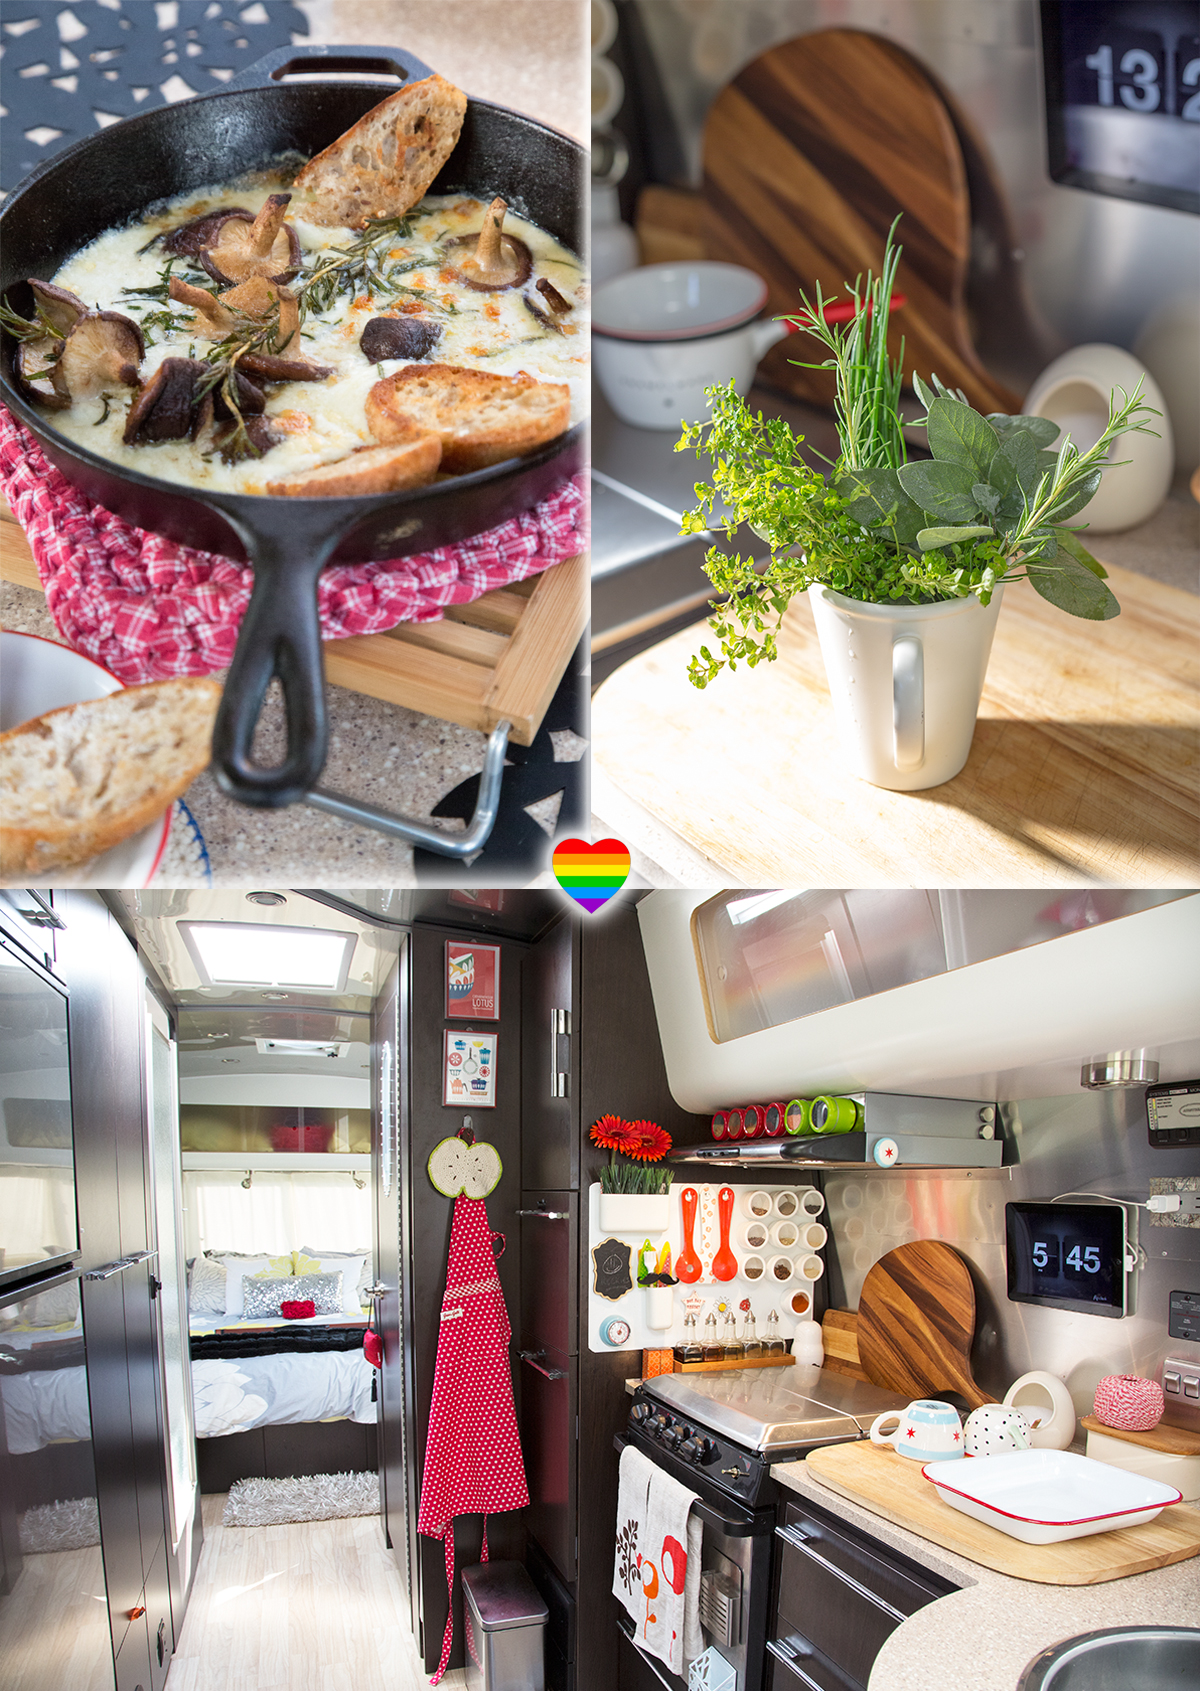 melty mozzarella and mushrooms for dinner on the Airstream